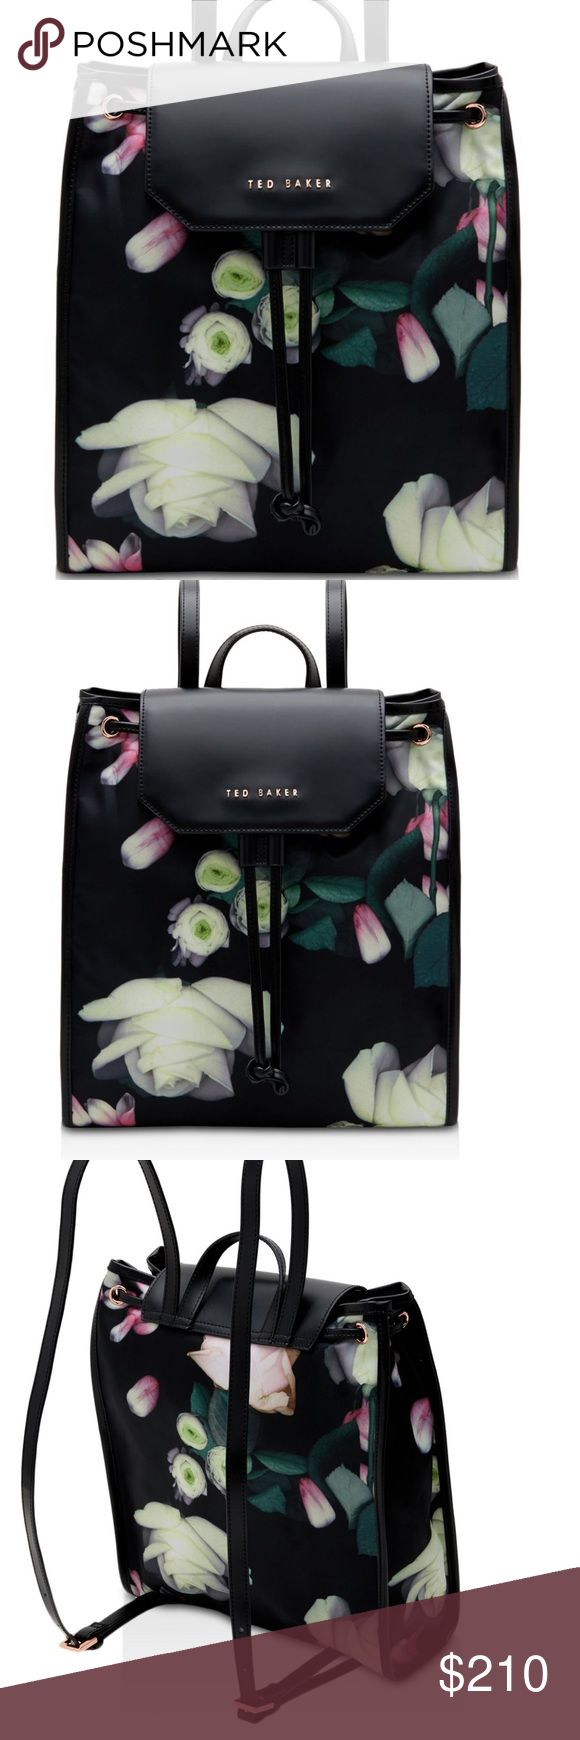 Host Pick Ted Baker floral print backpack Host Pick 🌷This rimless Ted Baker backpack is the perfect choice for any season. Black with floral print nylon and leather. Roomy enough to vary that tablet from r school, work or shopping. 100% Authentic new with tag. Ted Baker Bags Backpacks